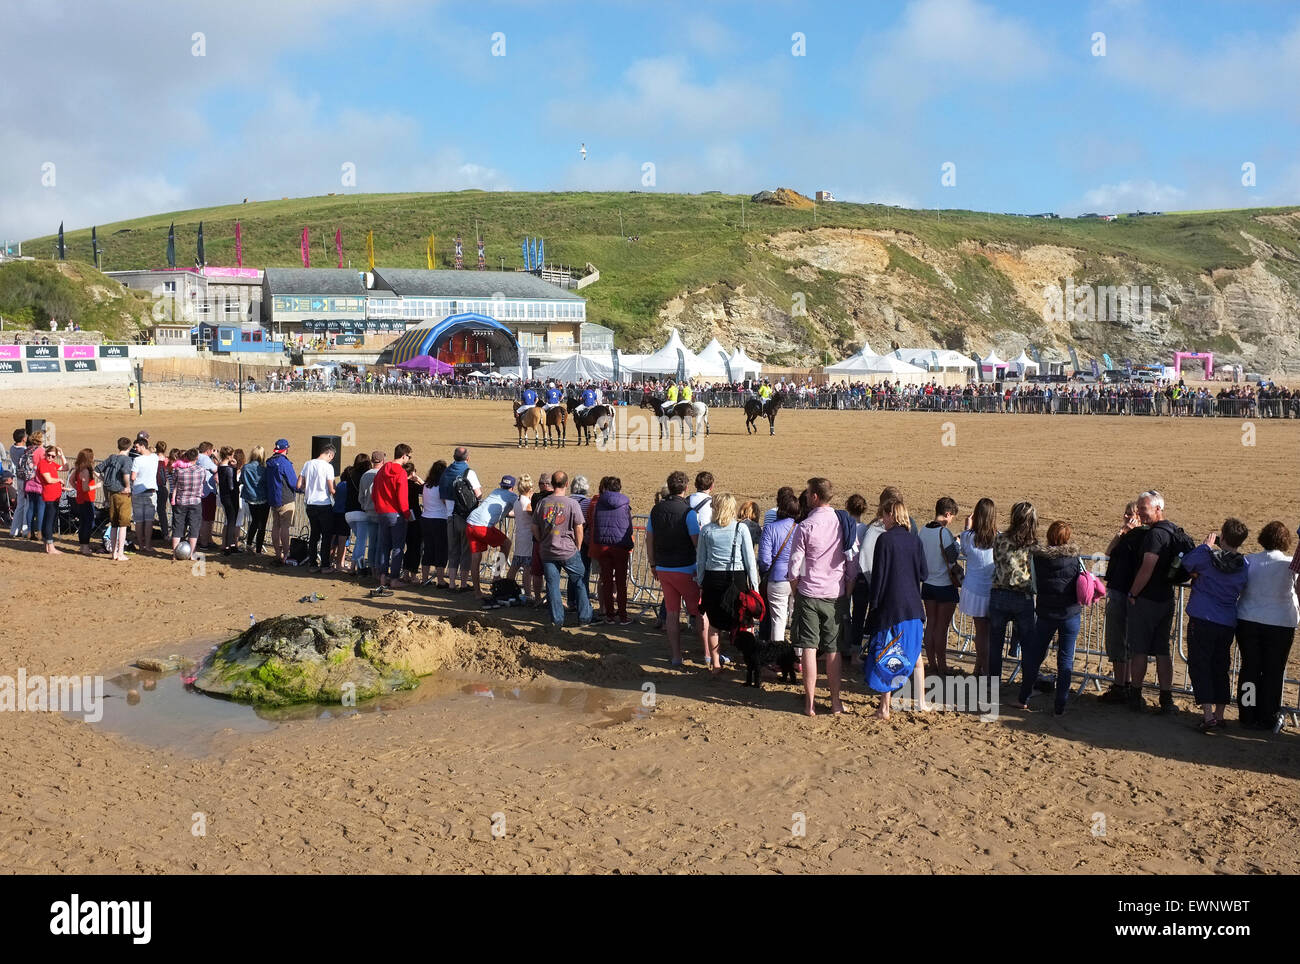 Spectators watching the annual ' Polo on the beach ' match at Watergate Bay near Newquay in Cornwall, UK - Stock Image